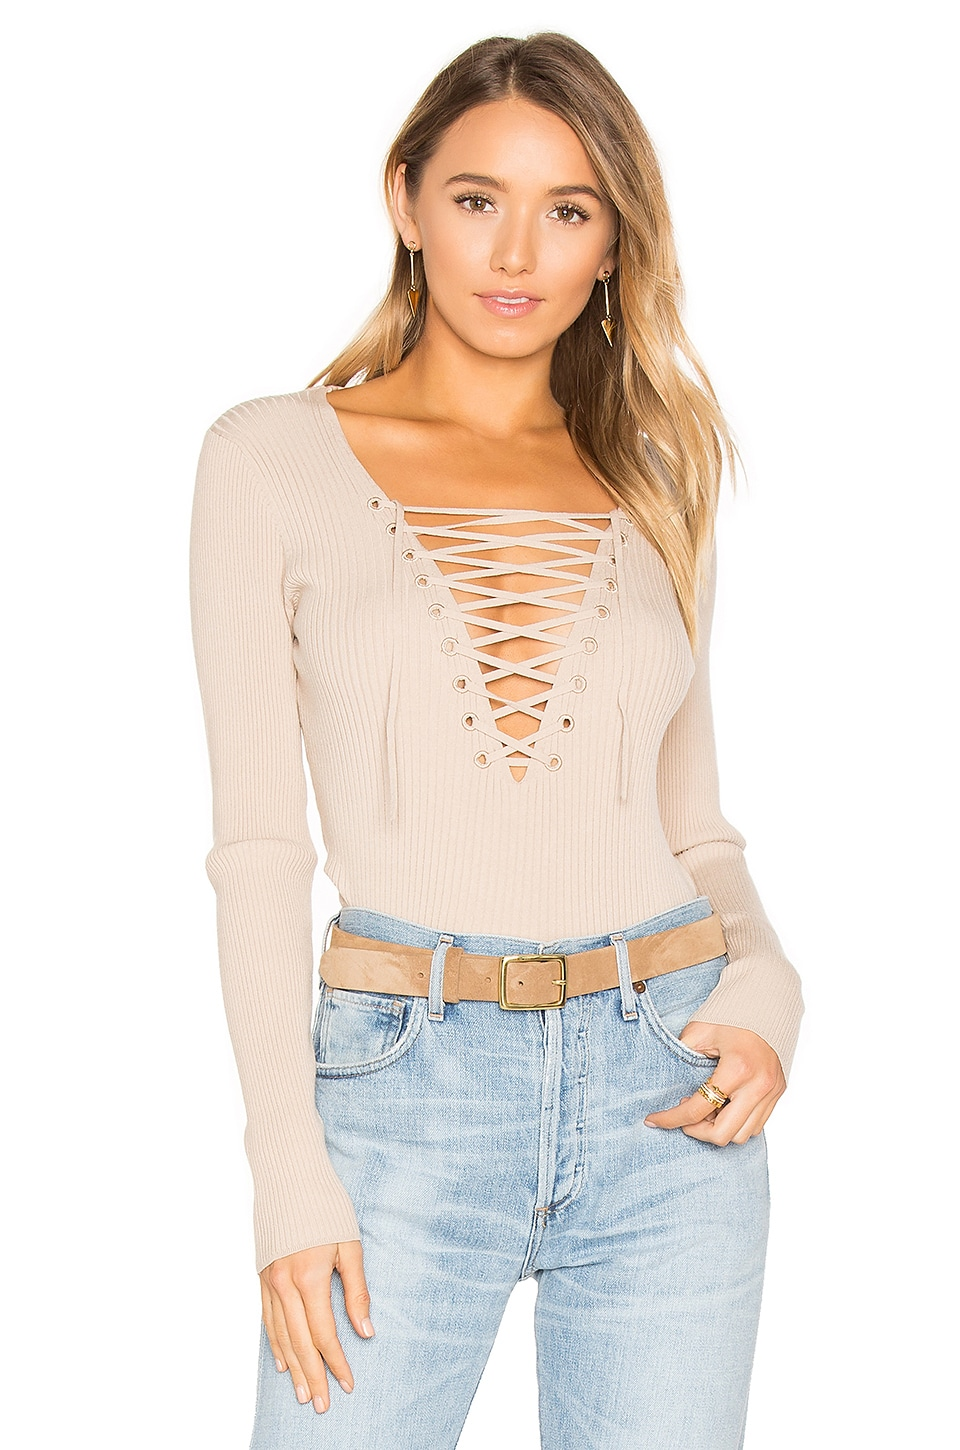 Solana Top by A.L.C.